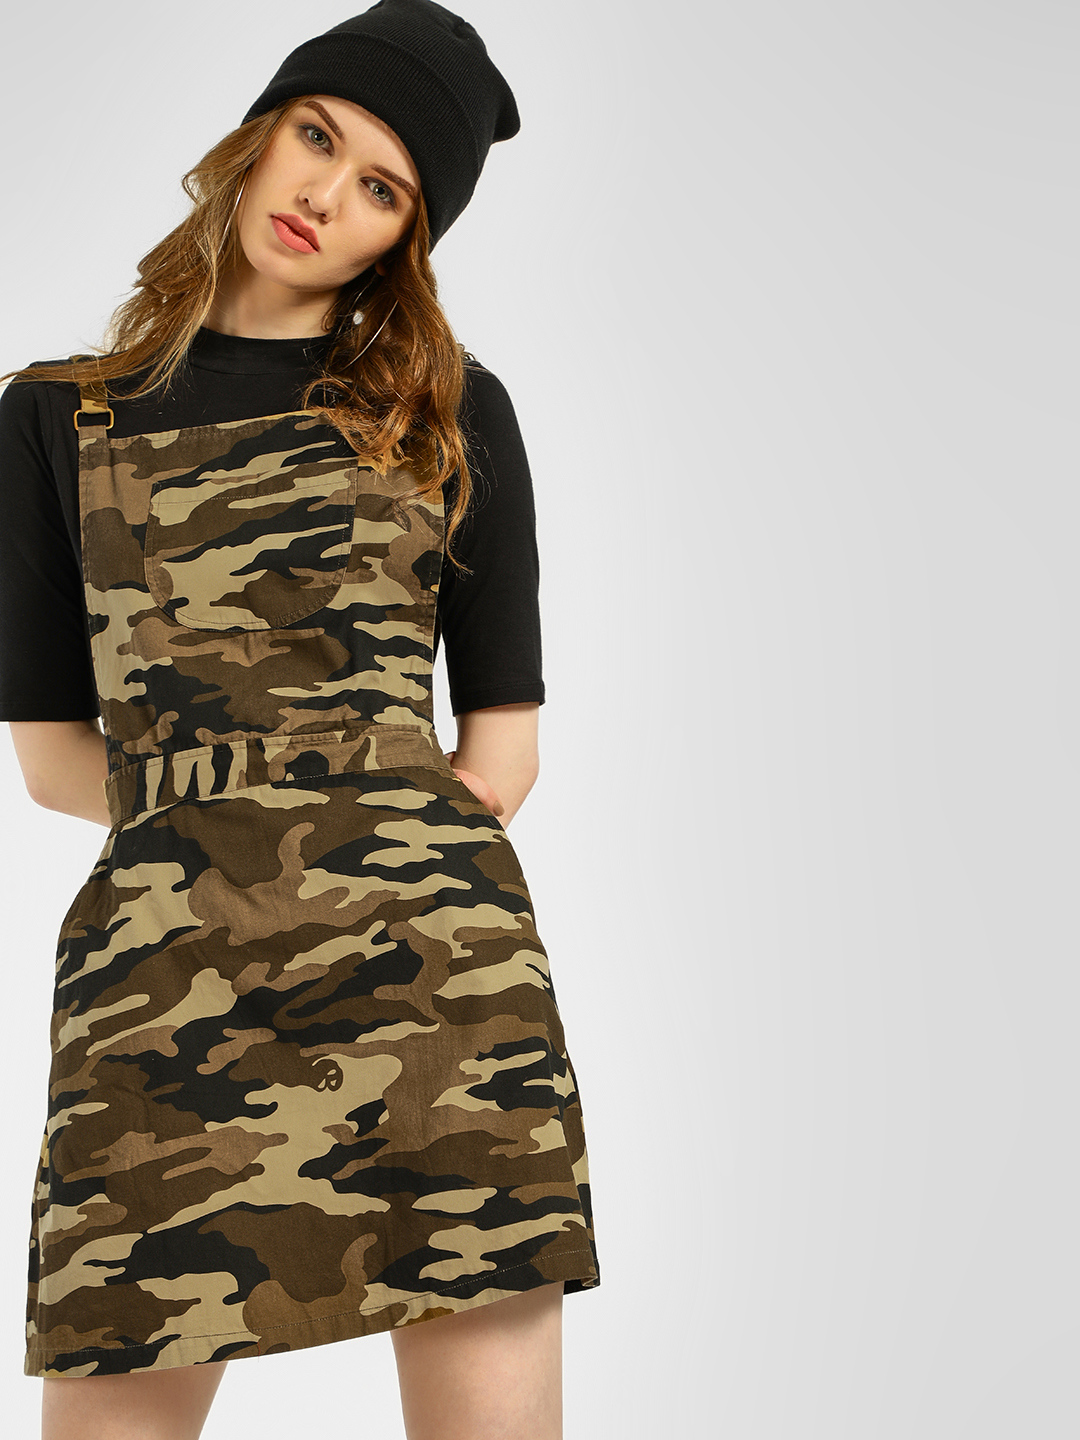 Spring Break Multi Camo Print Dungaree Dress 1